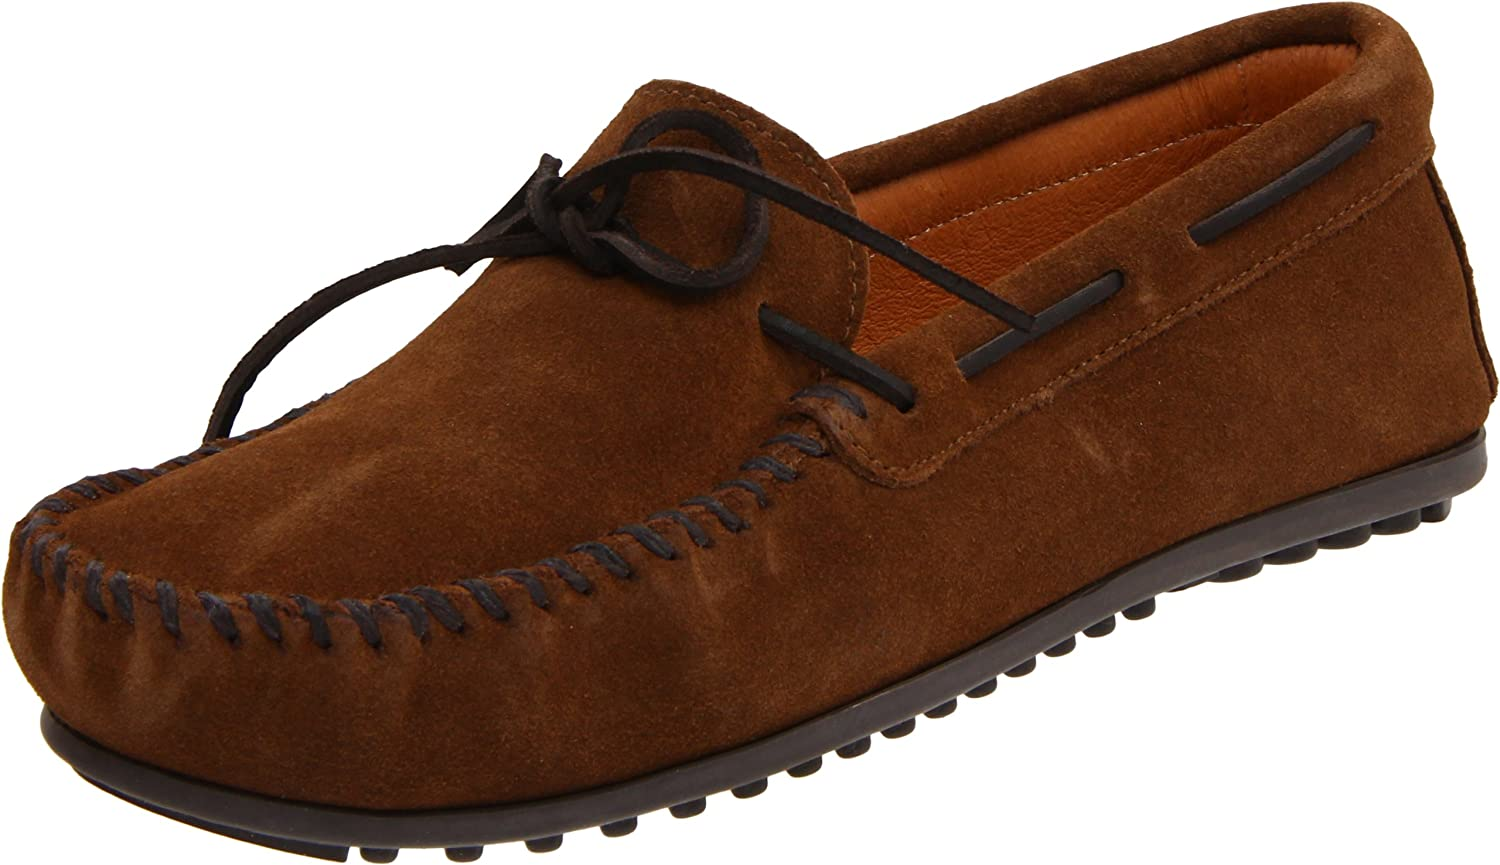 Minnetonka Classic Moc 917T Herren Mokassins  44 EU|Braun (Dusty Brown)